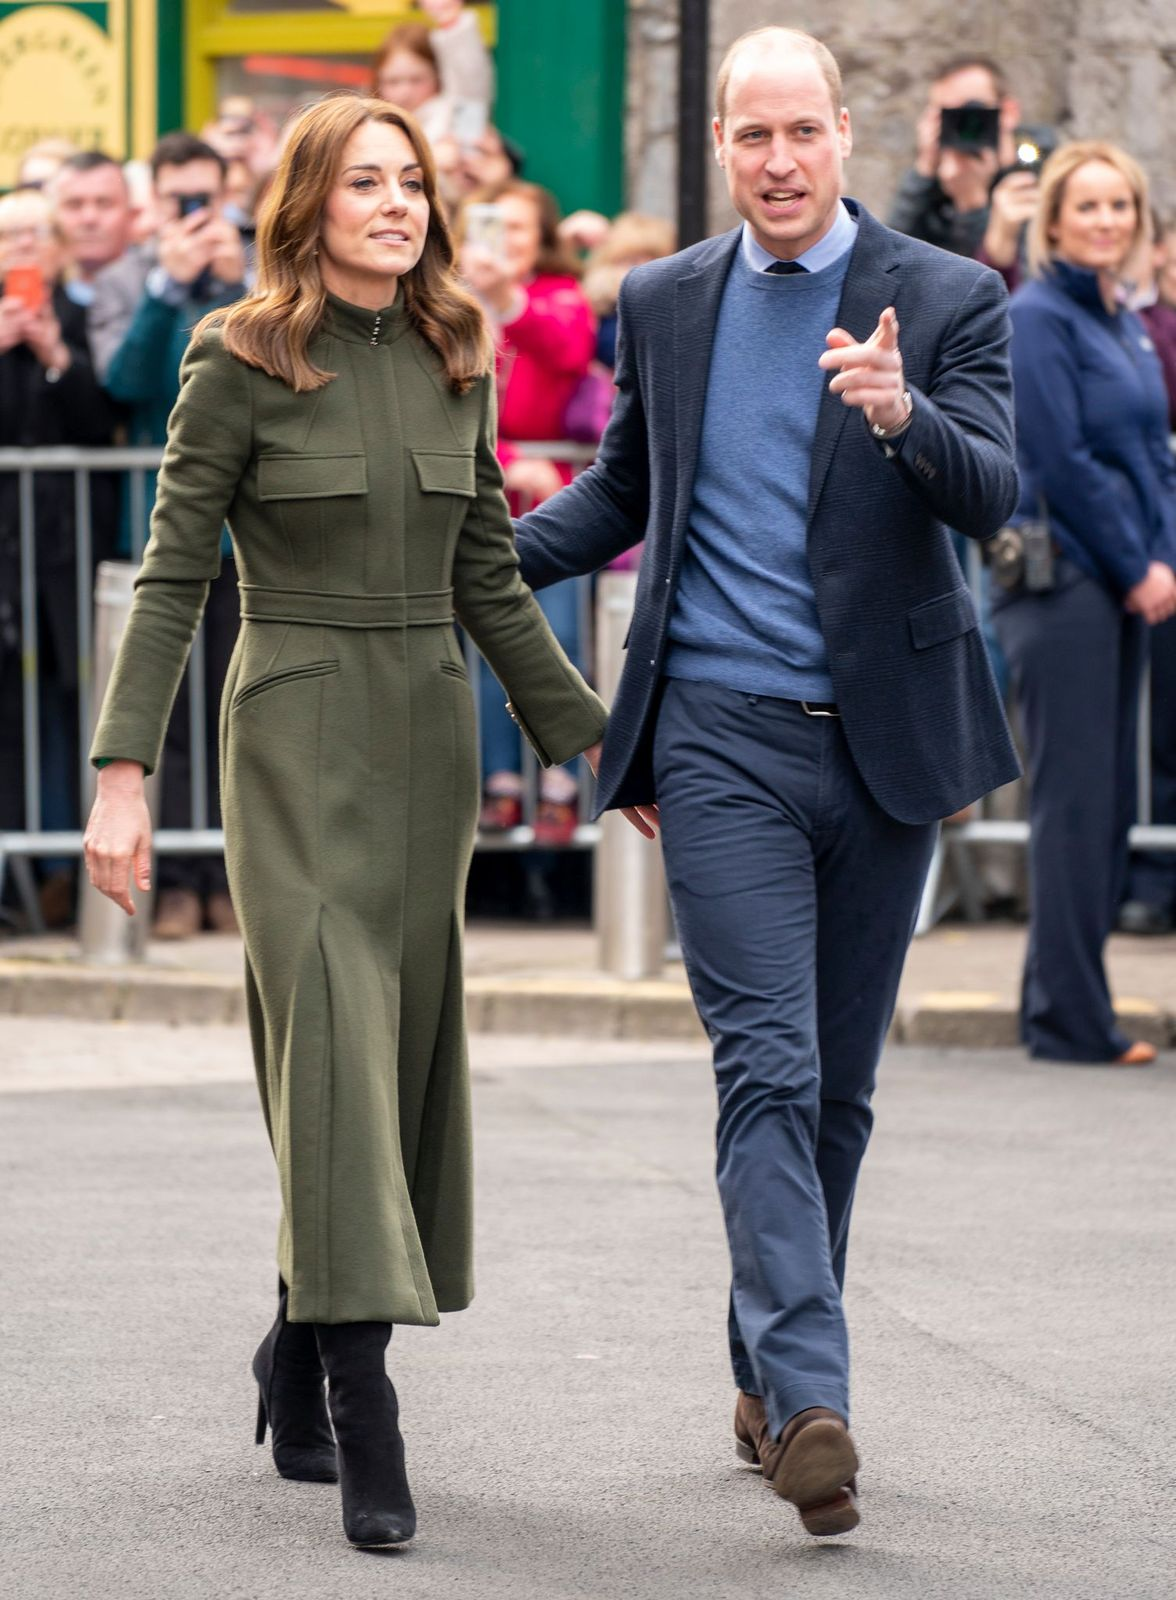 Duchess Kate andPrince Williamon King Street during day three of their visit to Ireland on March 5, 2020, in Galway, Ireland   Photo:Arthur Edwards - WPA Pool/Getty Images